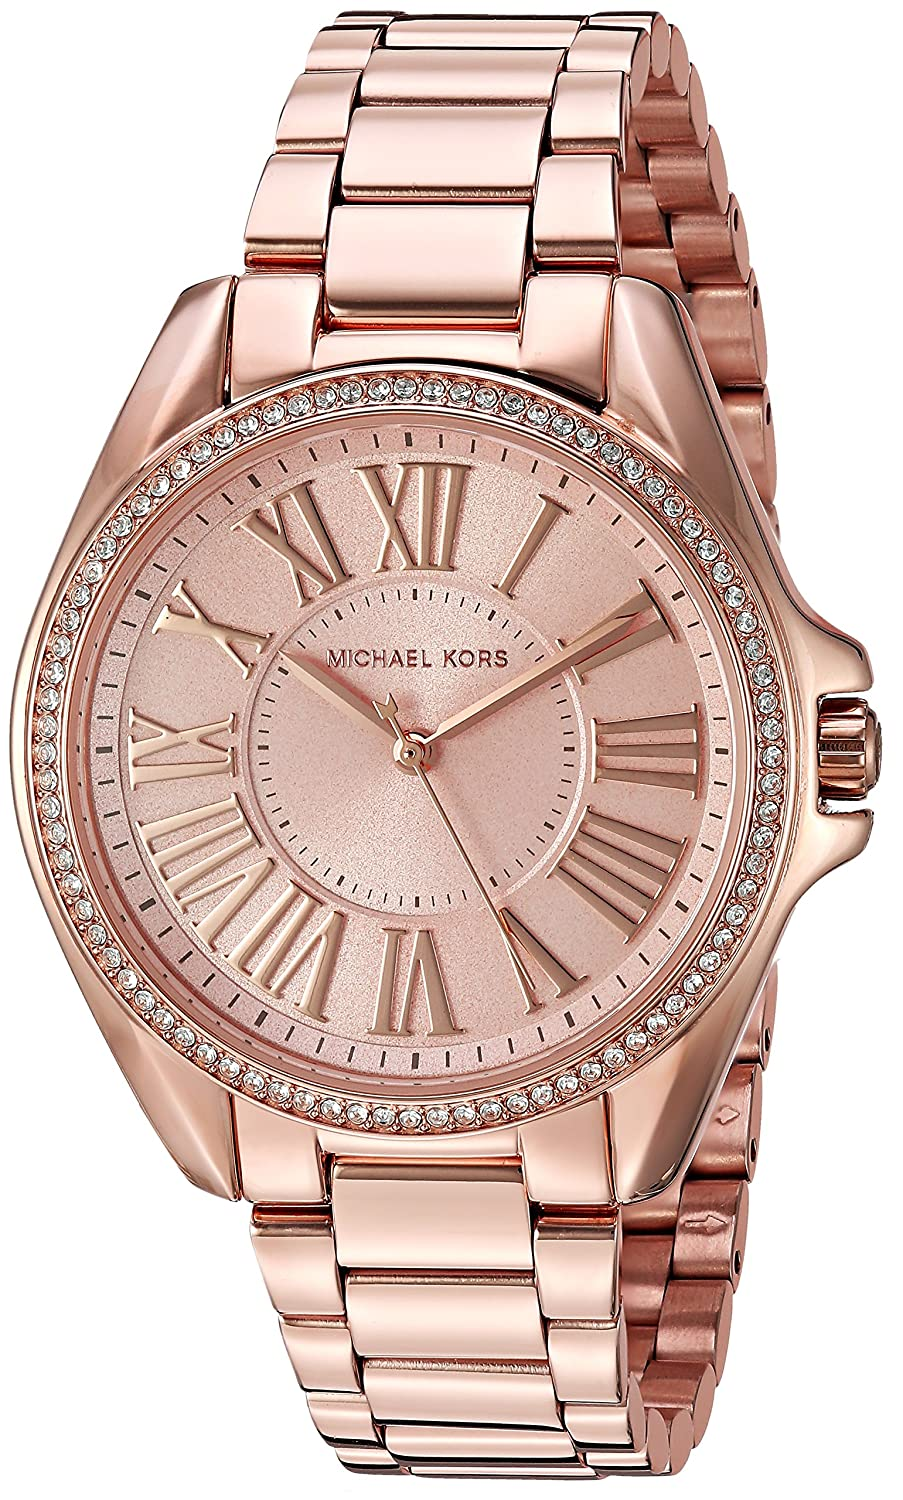 9b4eff6b84c2 Amazon.com  Michael Kors Women s Kacie Rose Gold-Tone Watch and Bracelet  Gift Set MK3569  Watches